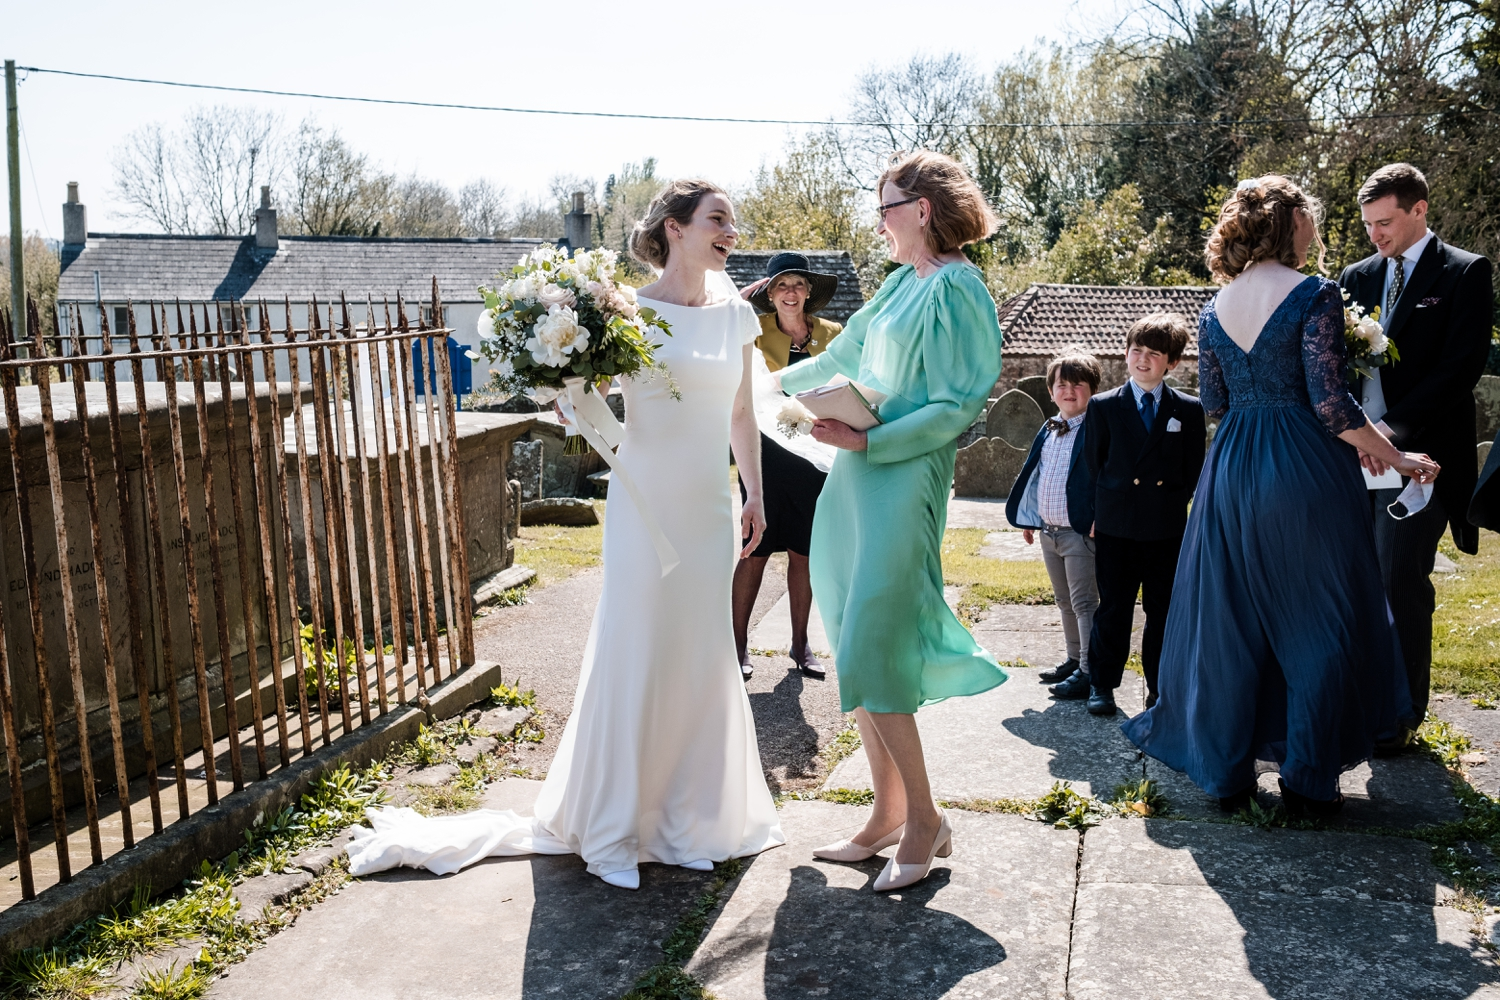 Restricted number of guest allowed at covid micro wedding celebrate